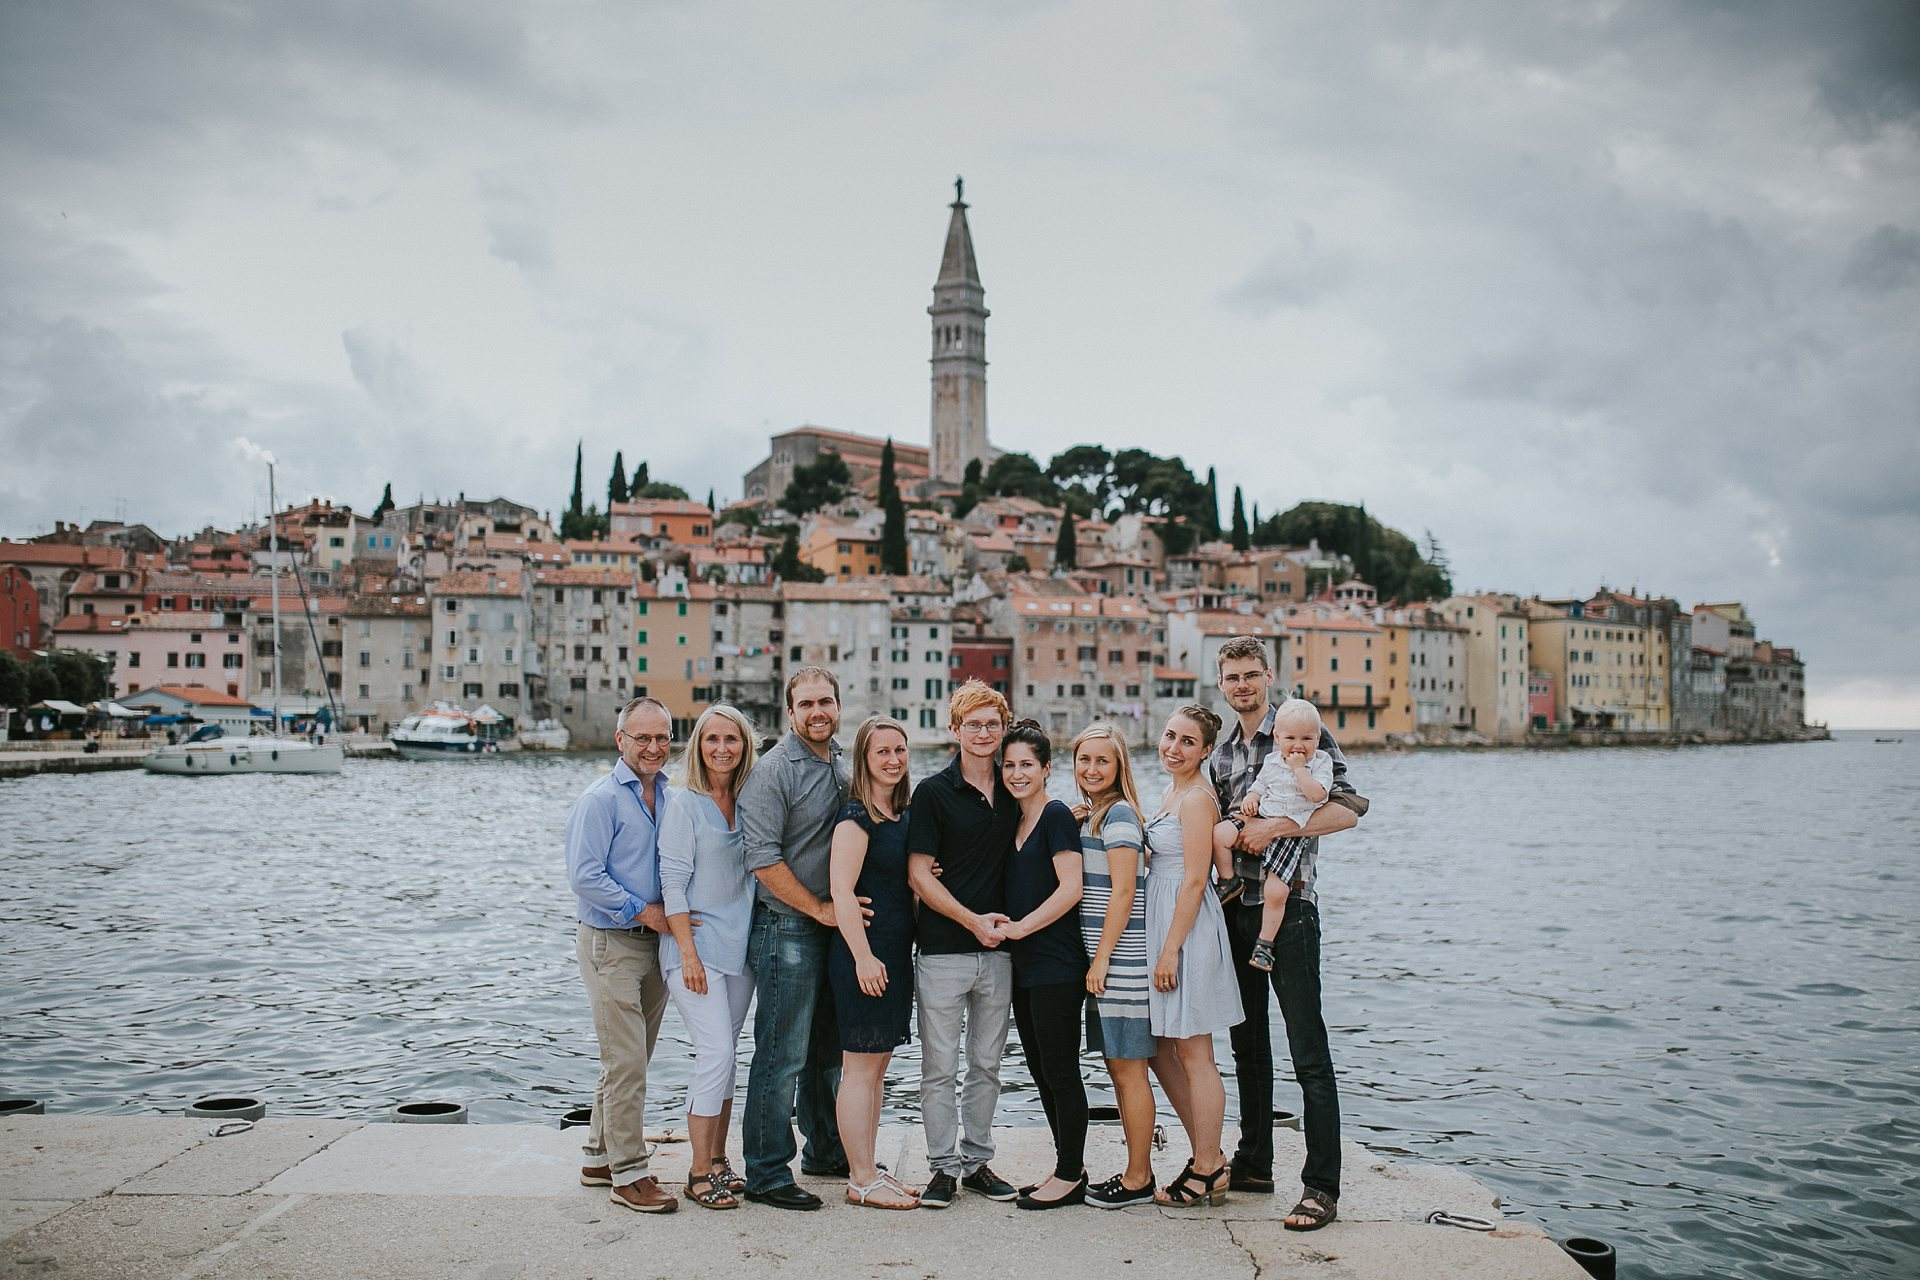 Dalibora_Bijelic_Croatia_Istria_family_vacation_photographer_0001.jpg